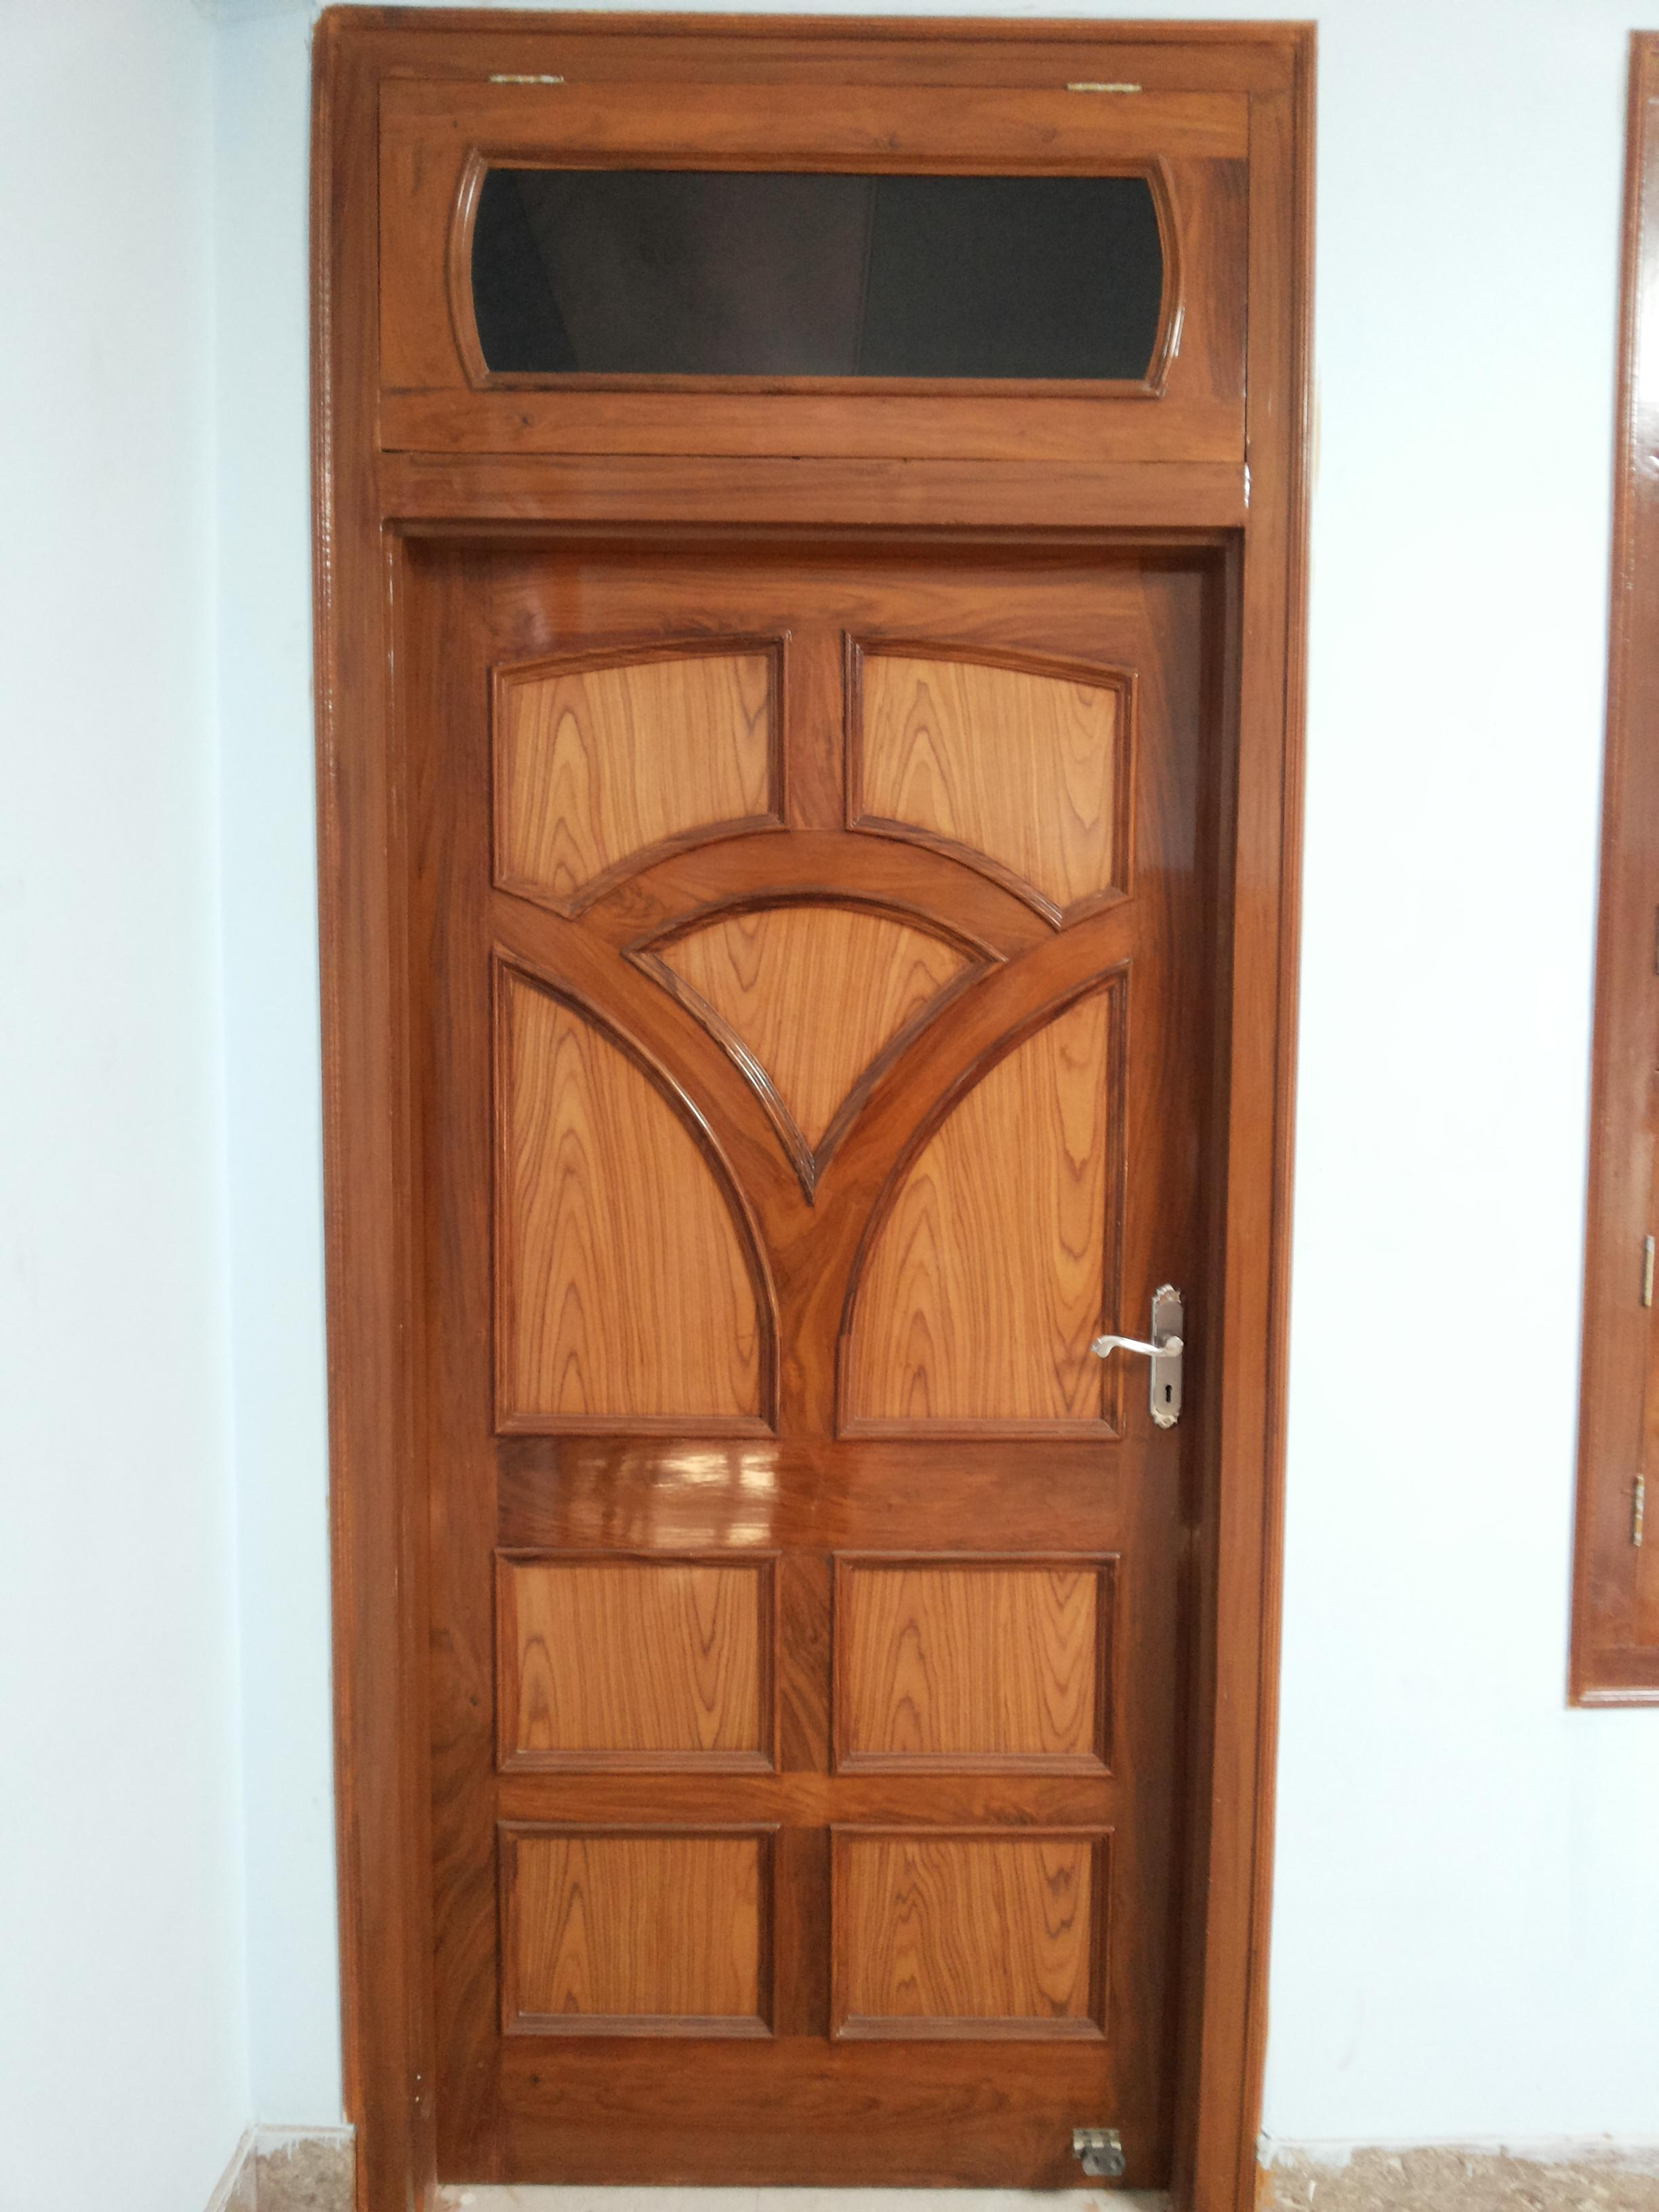 Single panel interior wood door design gharexpert for Single door design for home